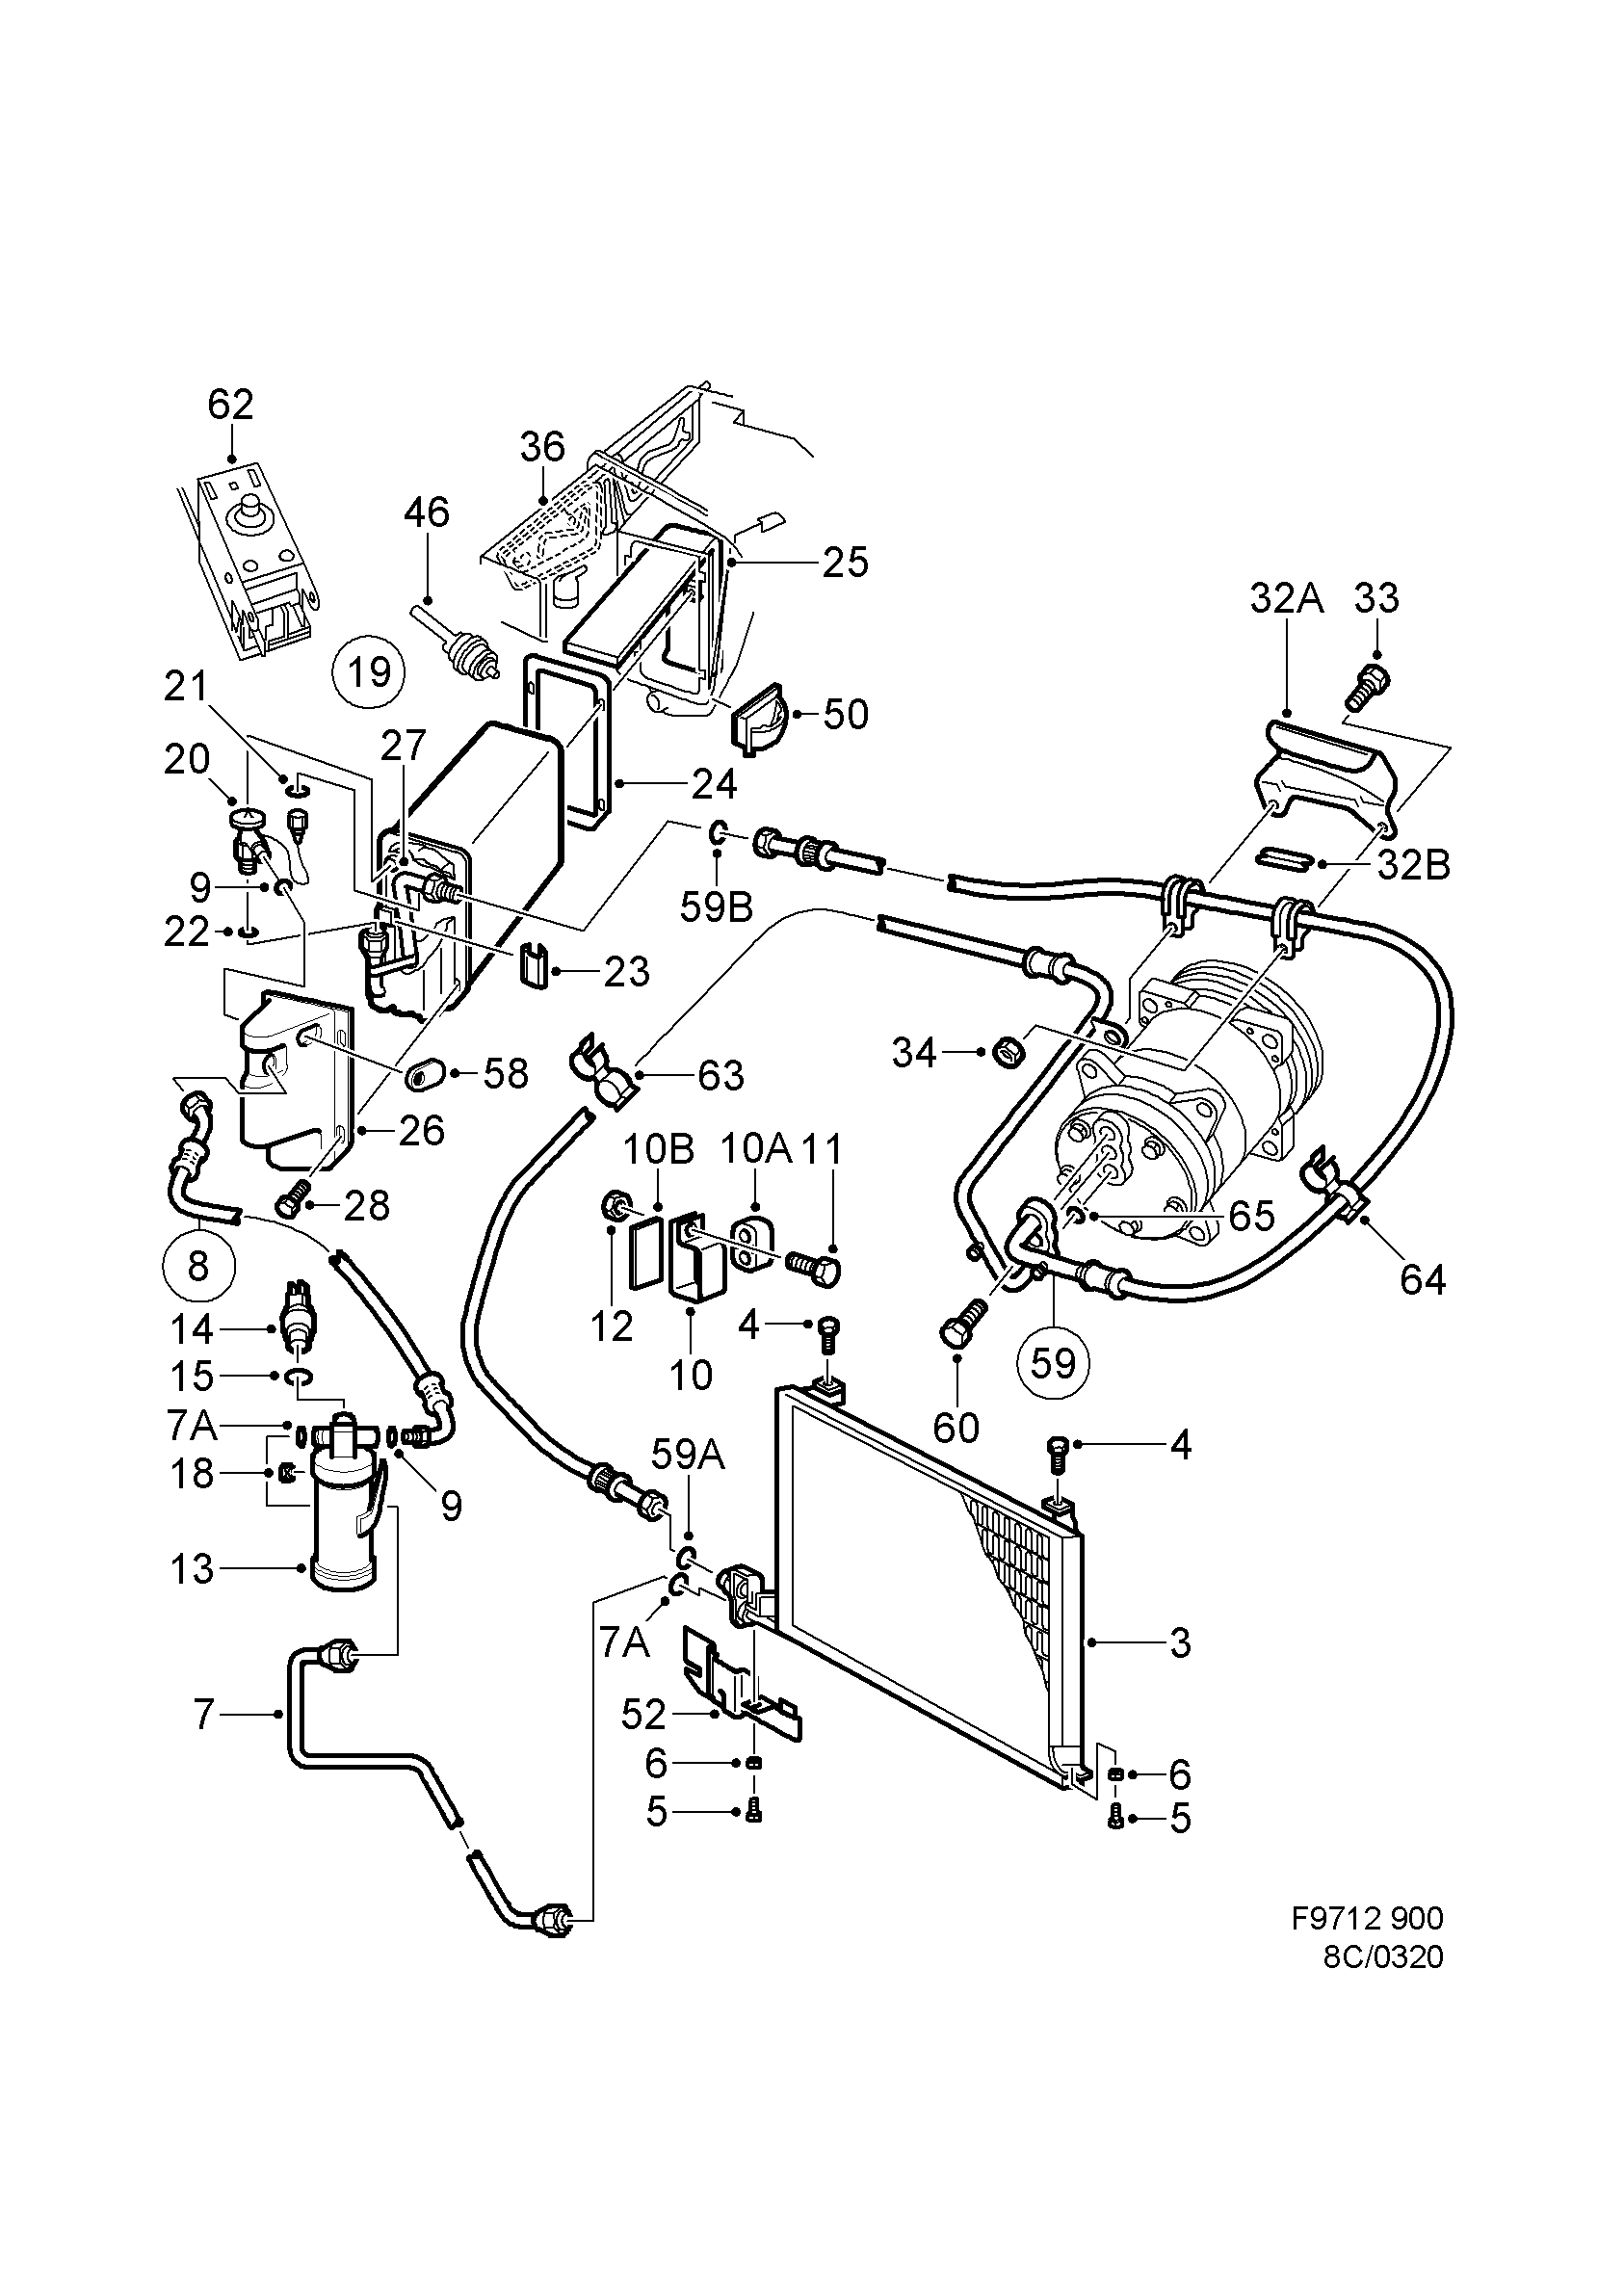 1990 Saab 900 Engine Diagram